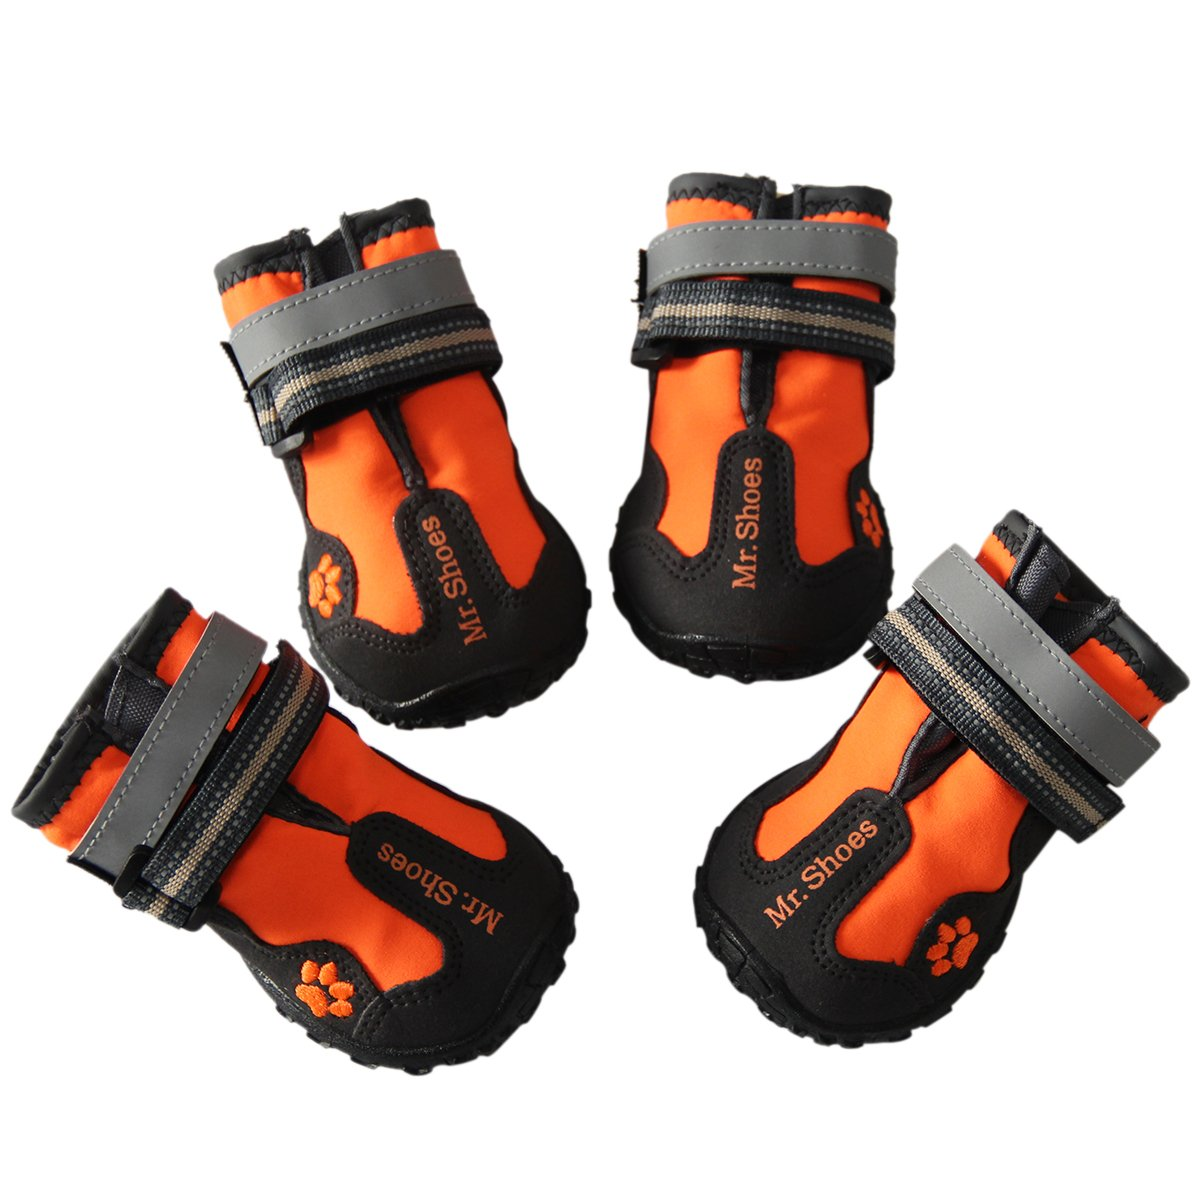 vecomfy Waterproof Dog Shoes for Large Dogs,Outdoor Mountaineering Non-Slip Dog Boots Protect Paws (Orange,Size 8) by vecomfy